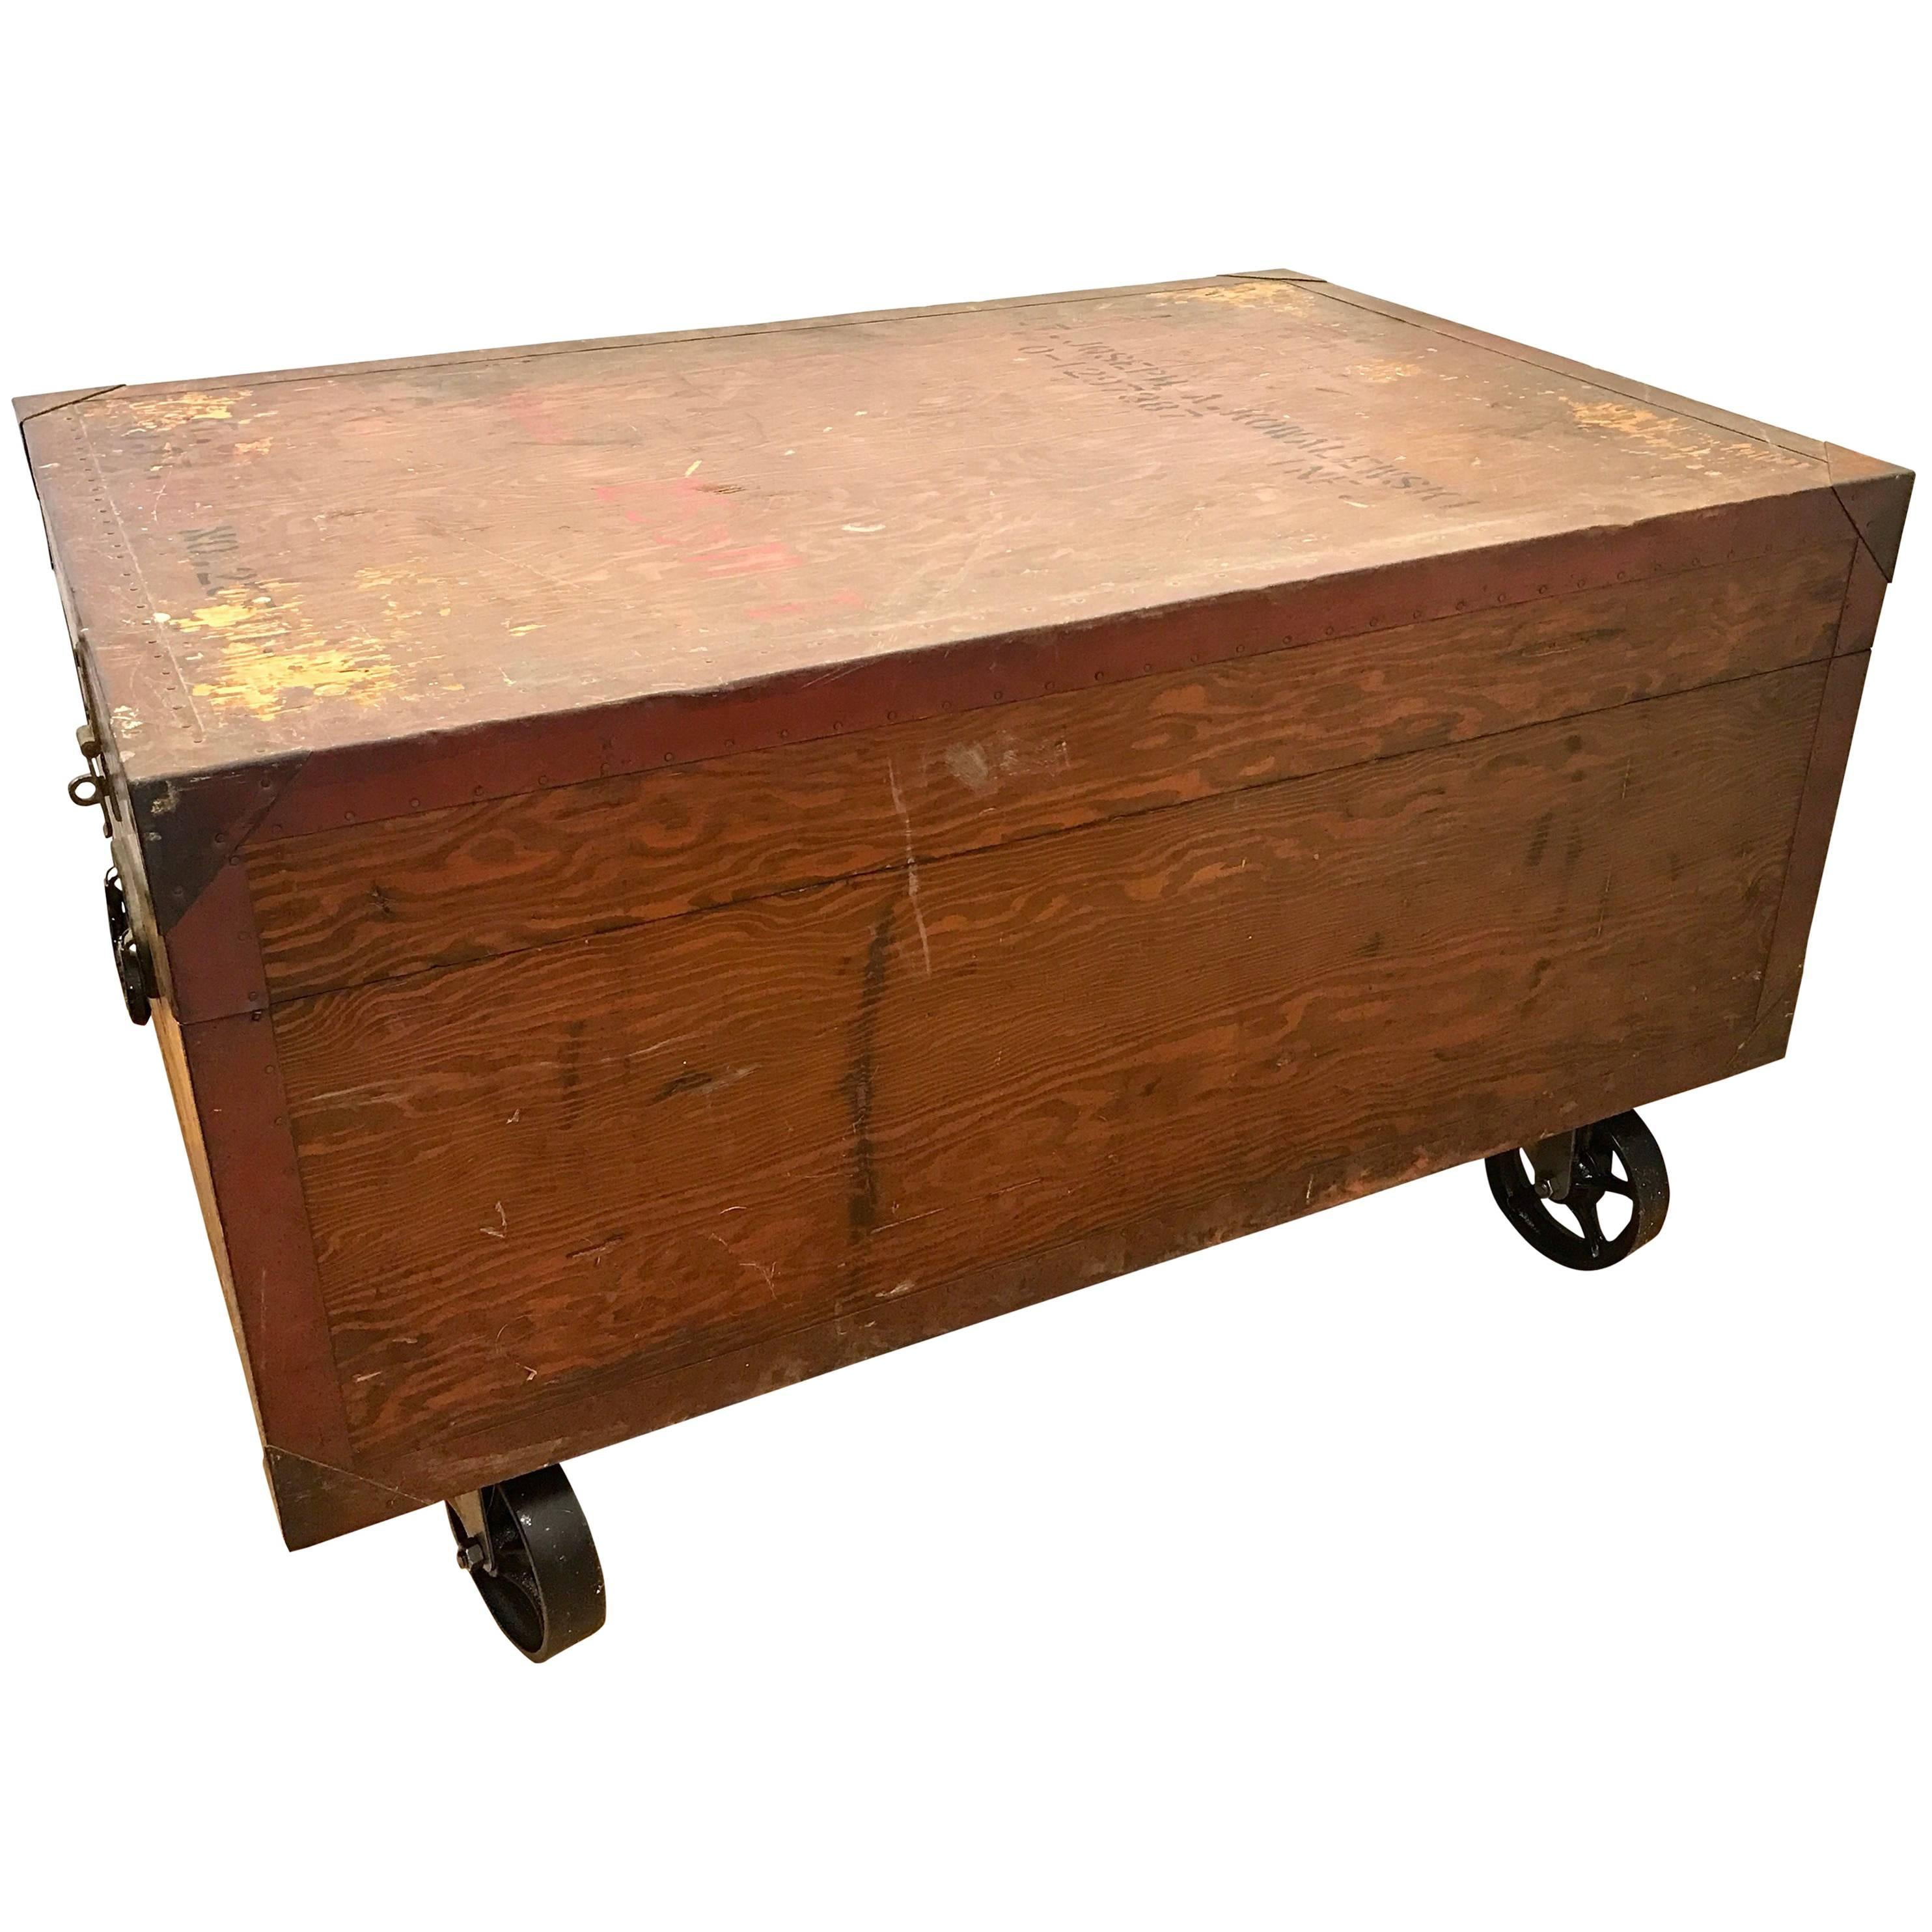 Antique Industrial Wood Trunk Coffee Table